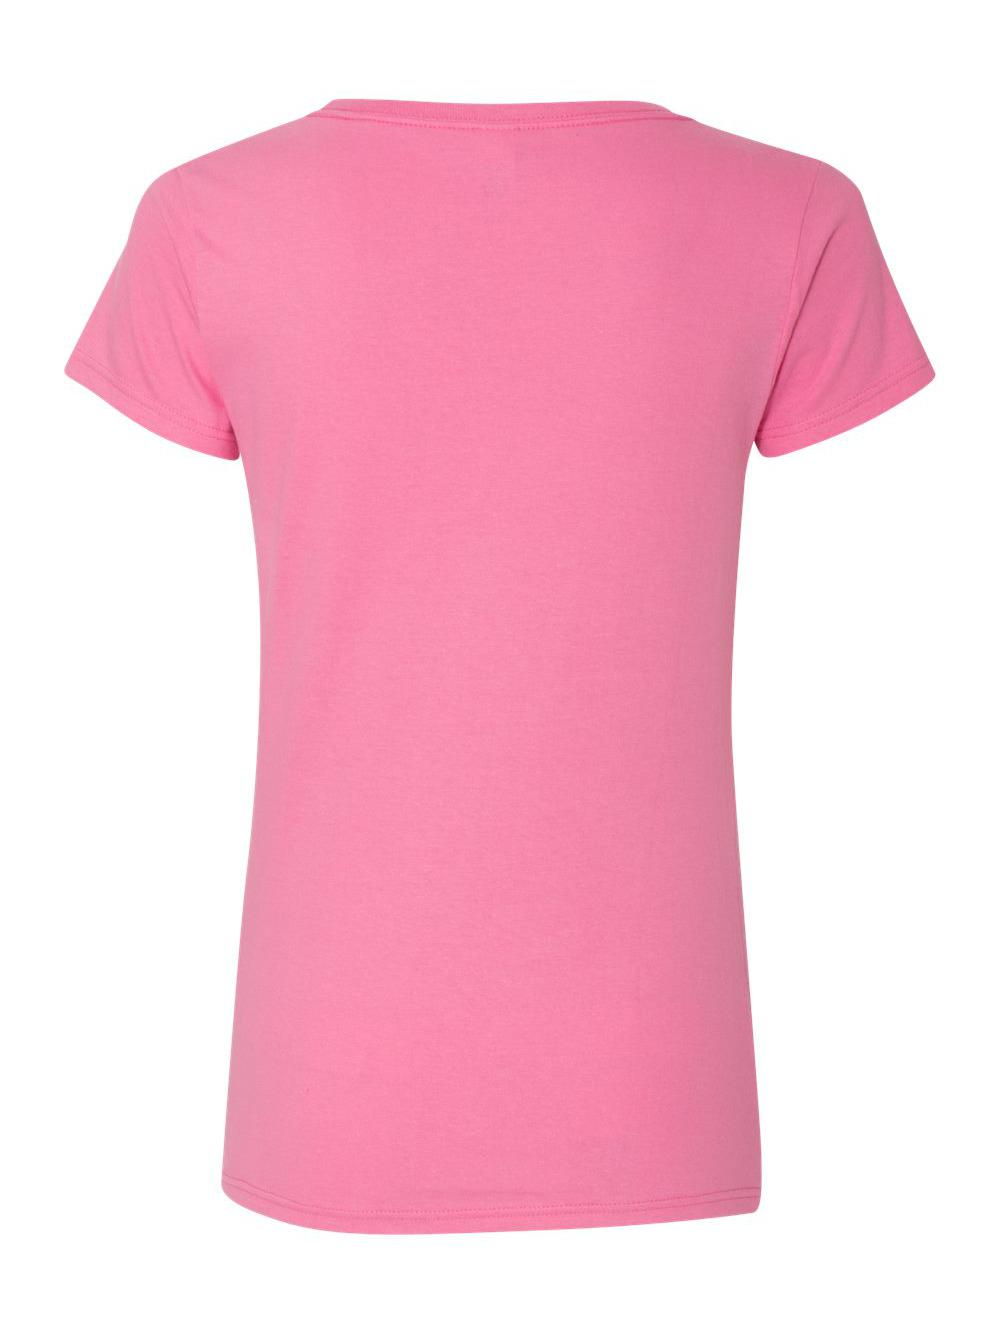 Gildan-Softstyle-Women-039-s-Deep-Scoopneck-T-Shirt-64550L thumbnail 4